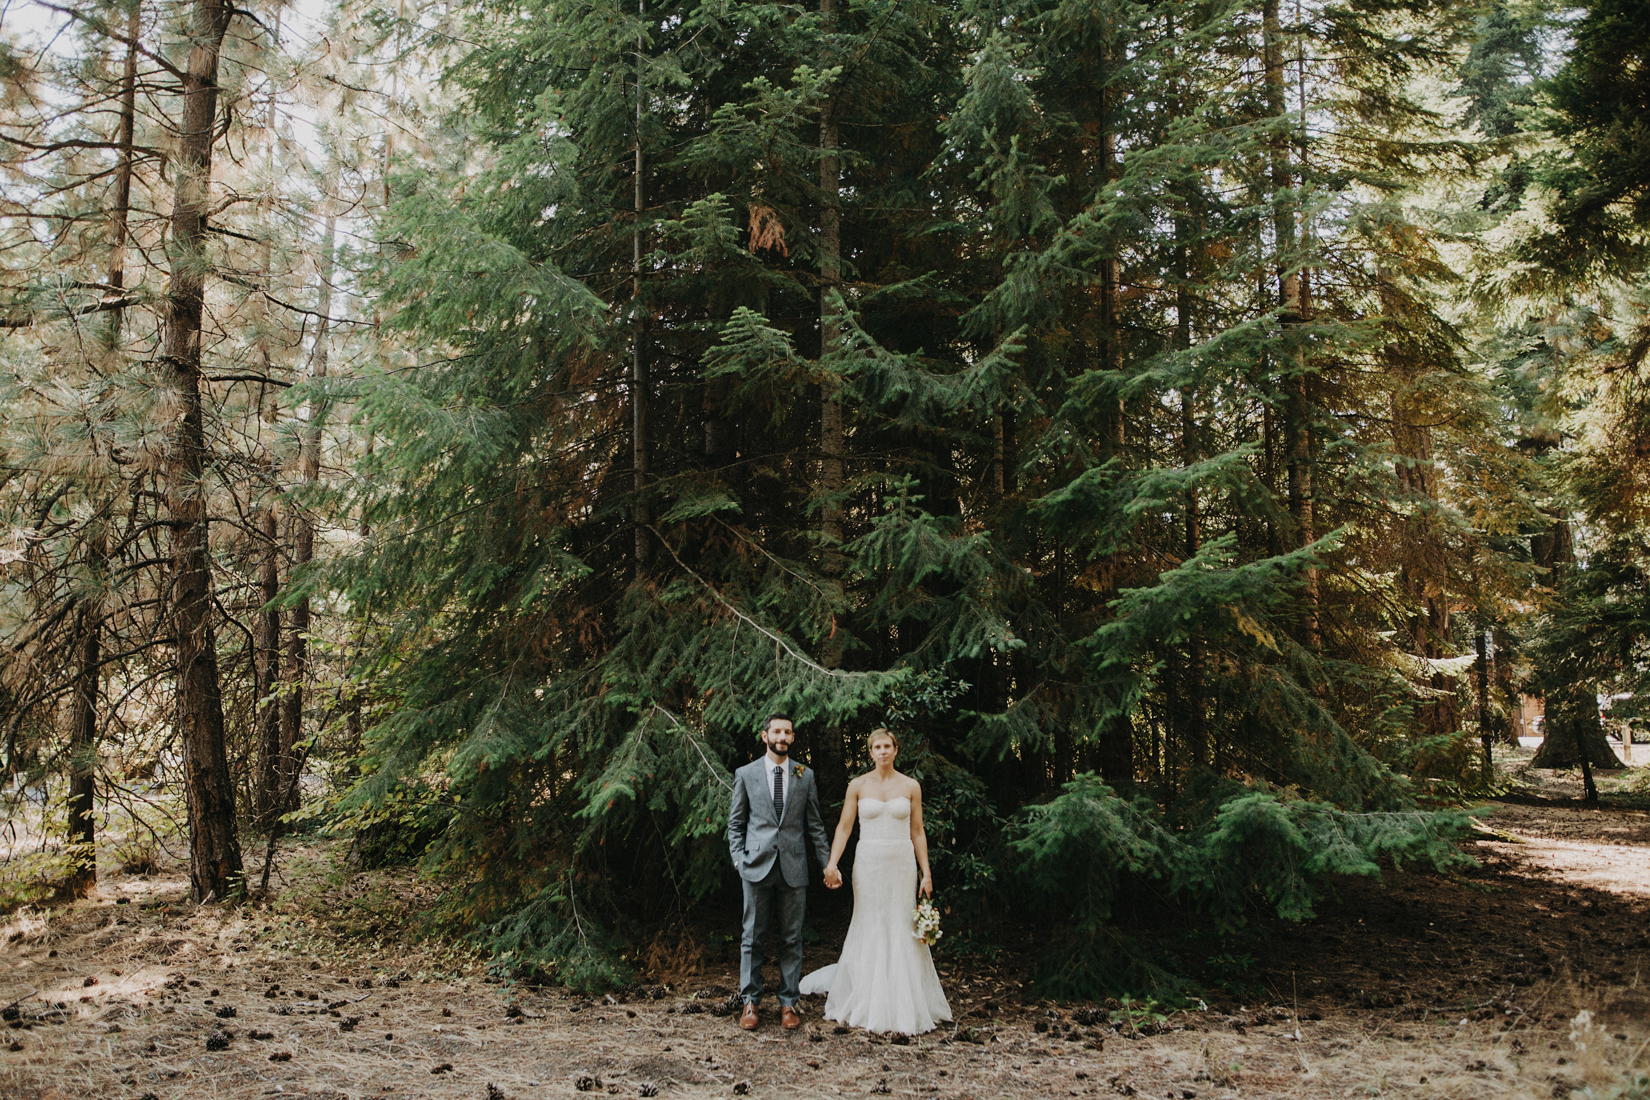 couple after their first look, standing hand in hand in a forest